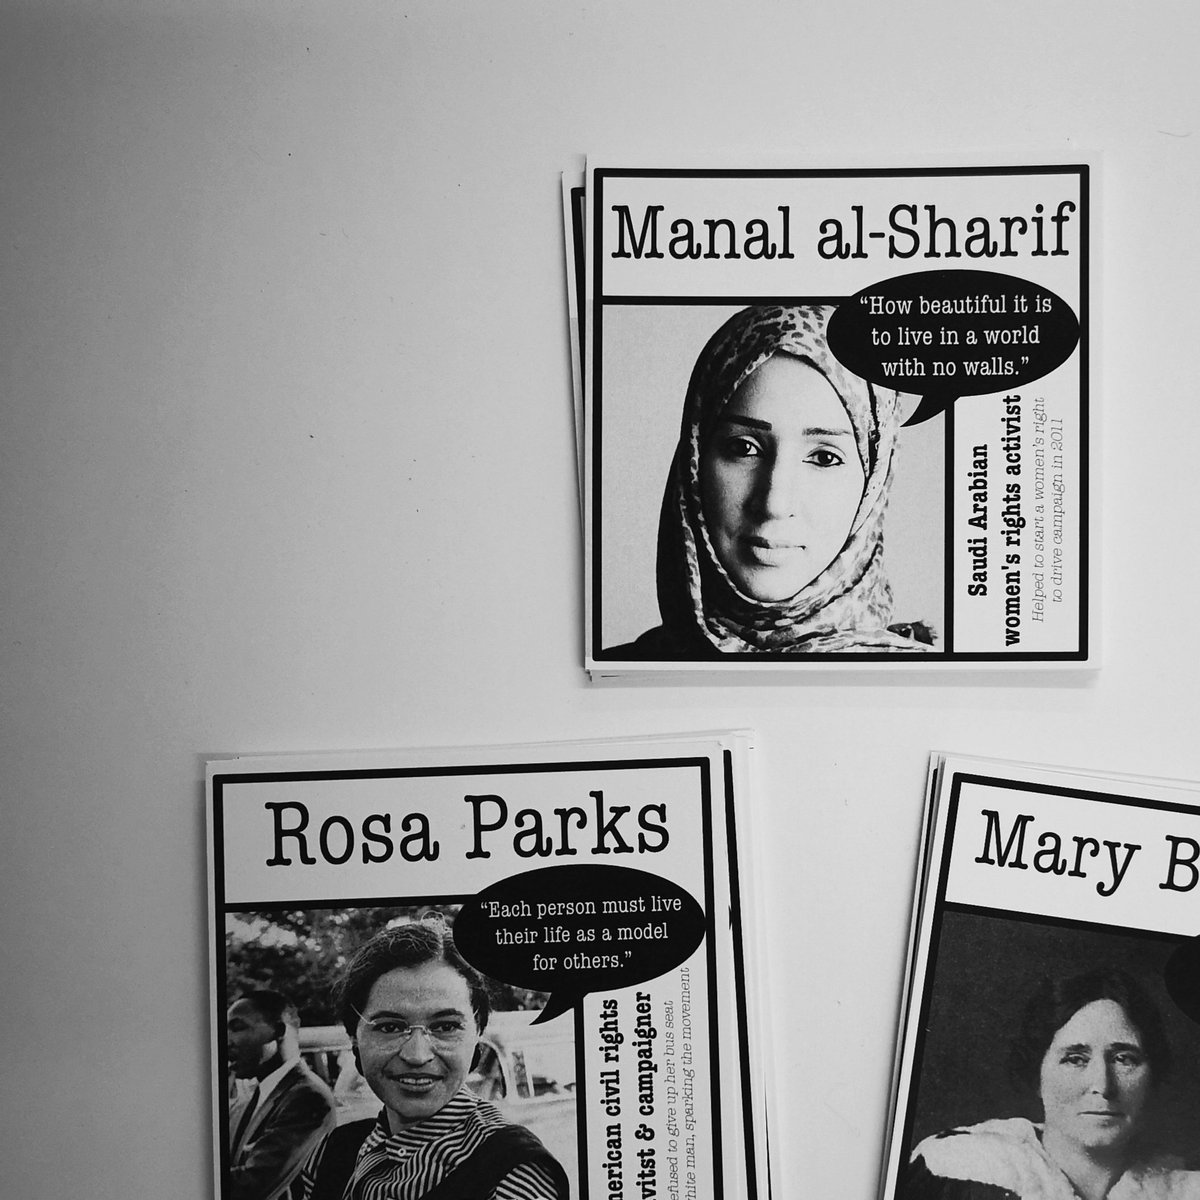 Rosa Parks, Manal al-Sharif and Mary Barbour cards with info and a quote about each